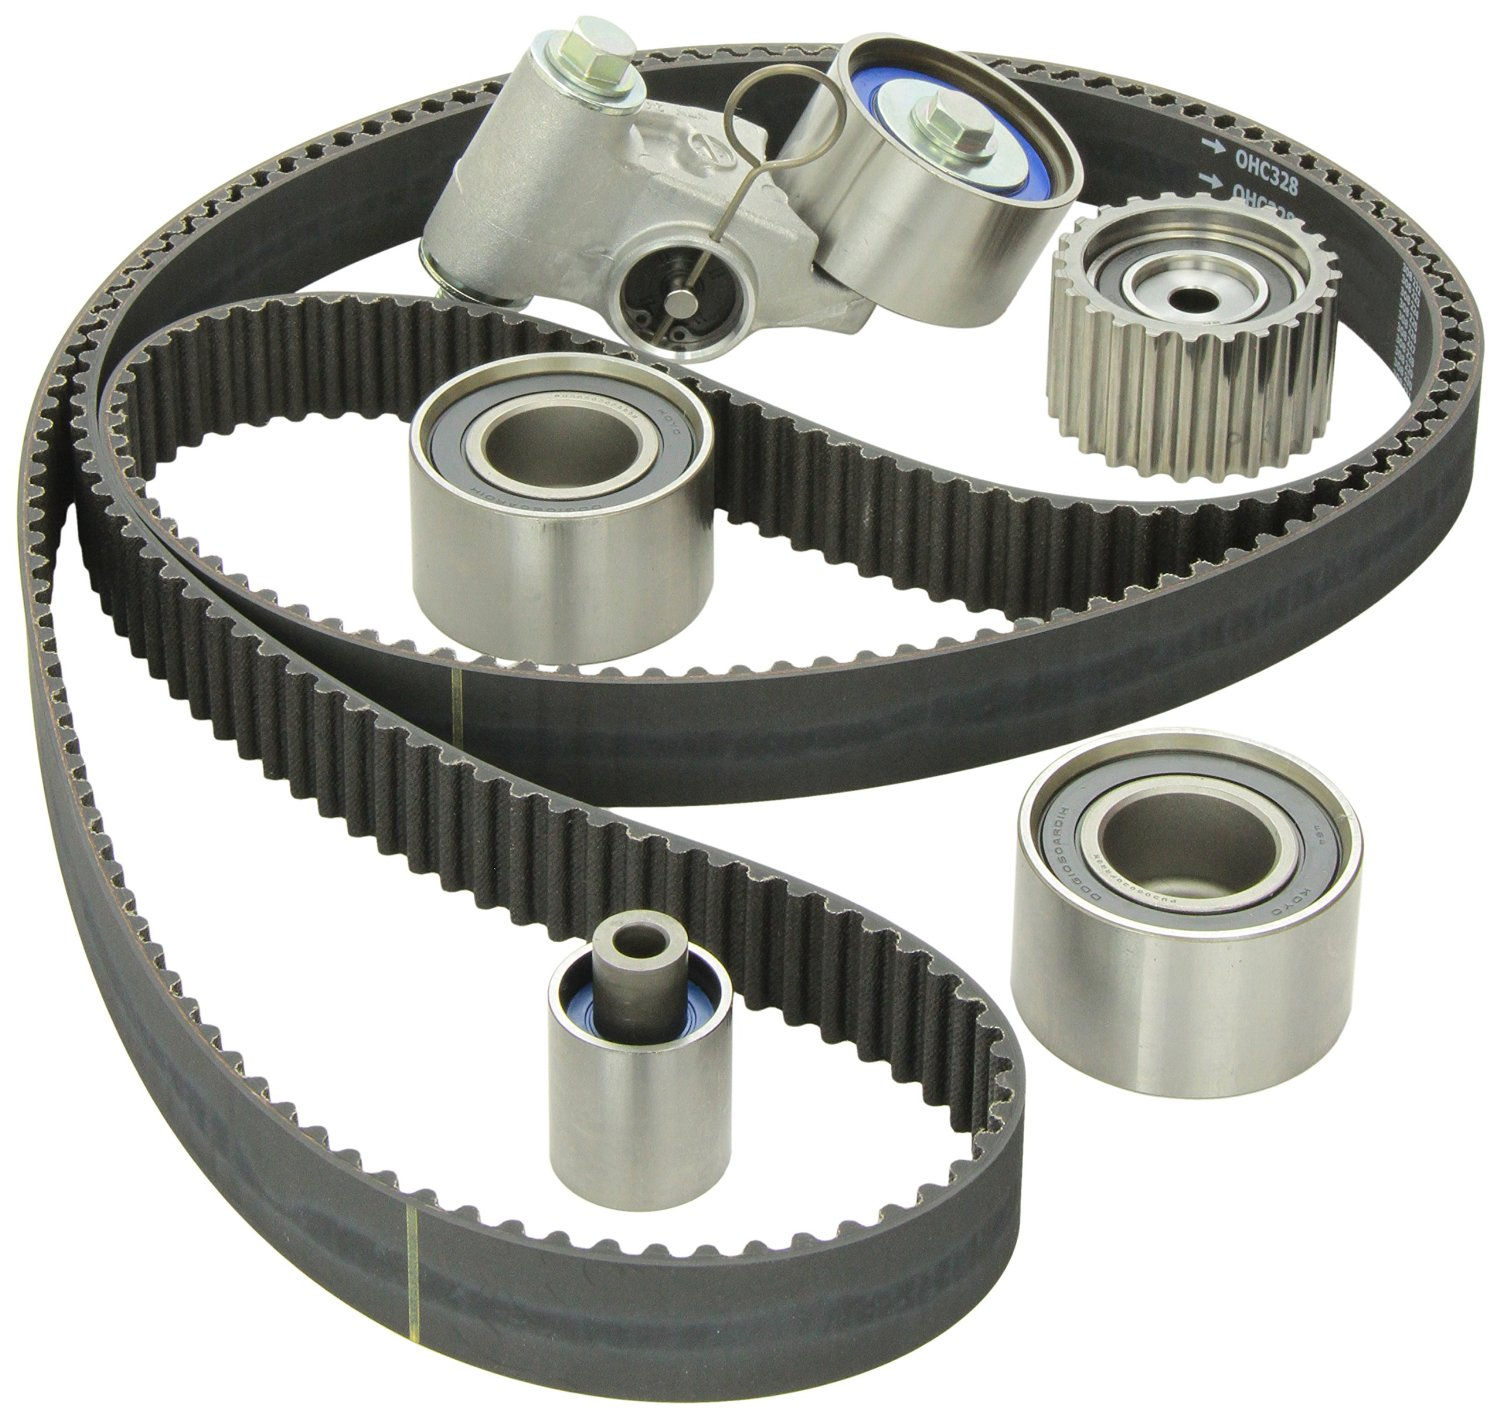 Extreme Psi Your 1 Source For In Stock Performance Parts Timing Belt Gear Gates Kit No Water Pump Subaru Wrx Ej20 02 03